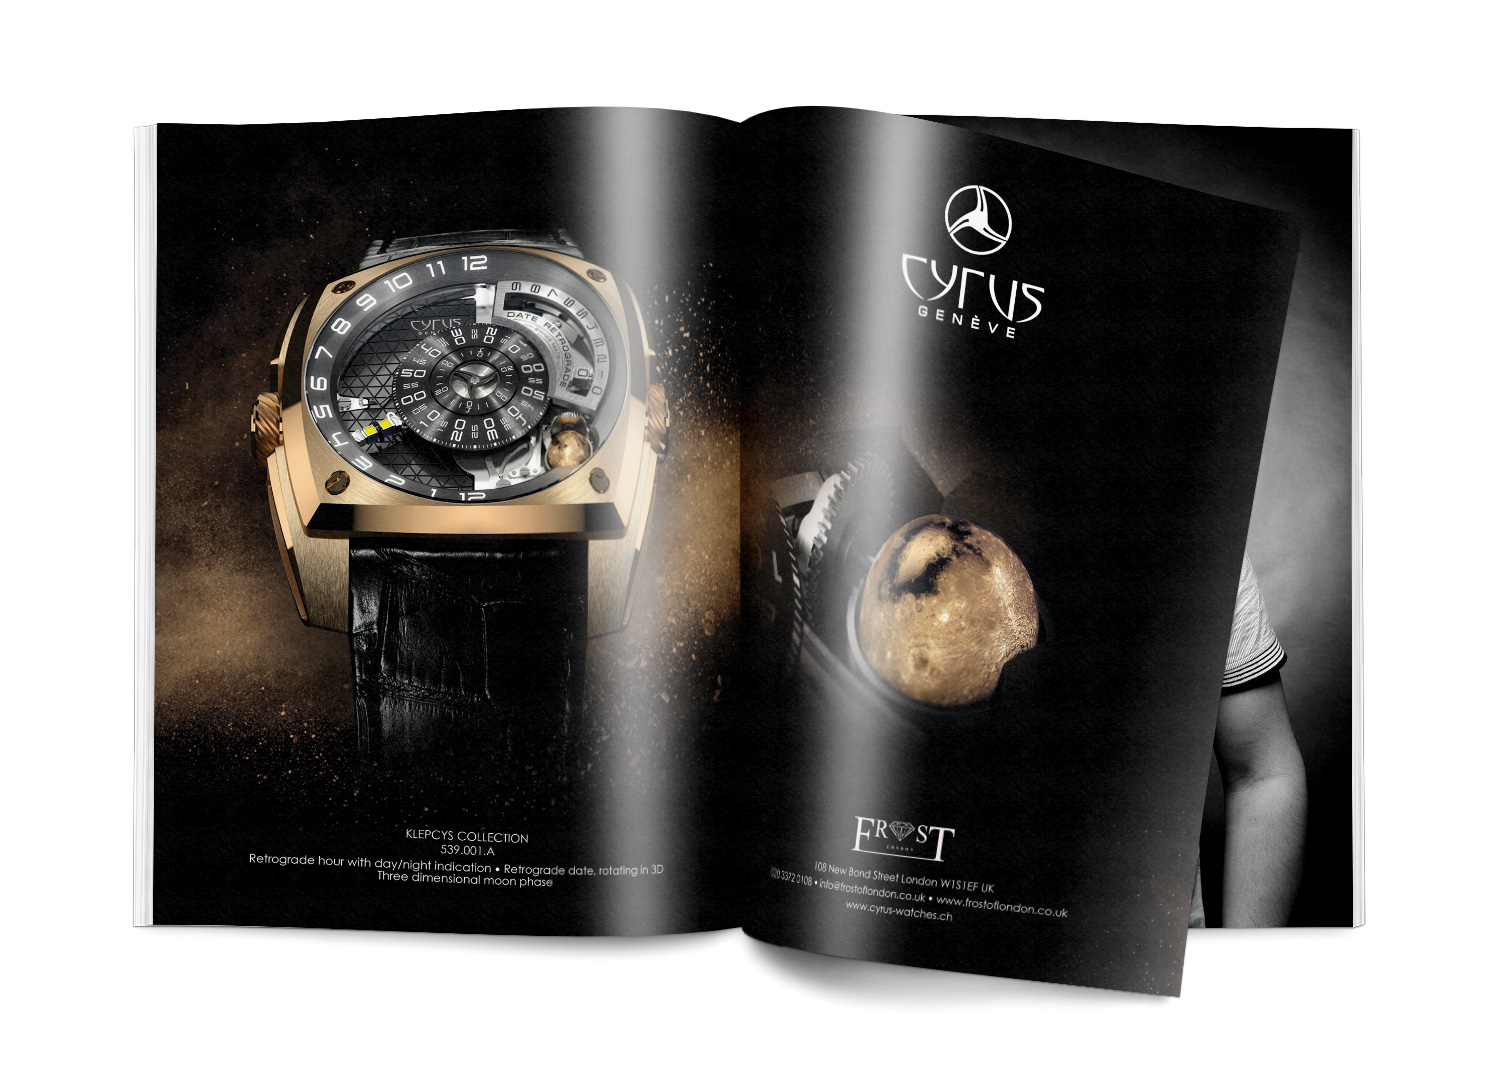 Signature de Luxe - Advertising - Cyrus Watches